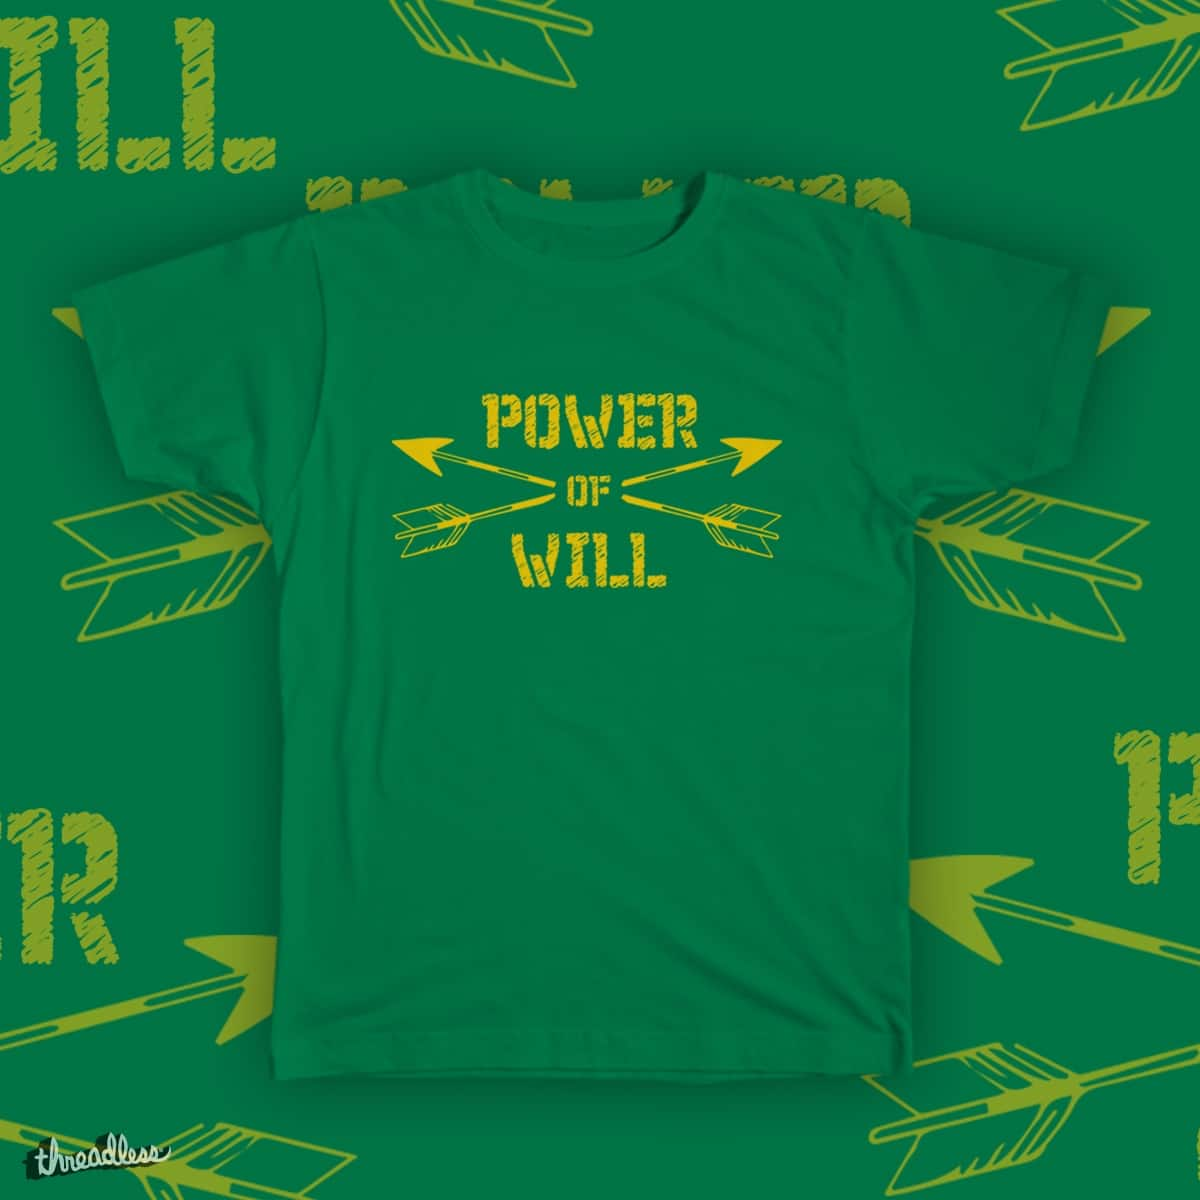 Power of Will by awsultanx on Threadless